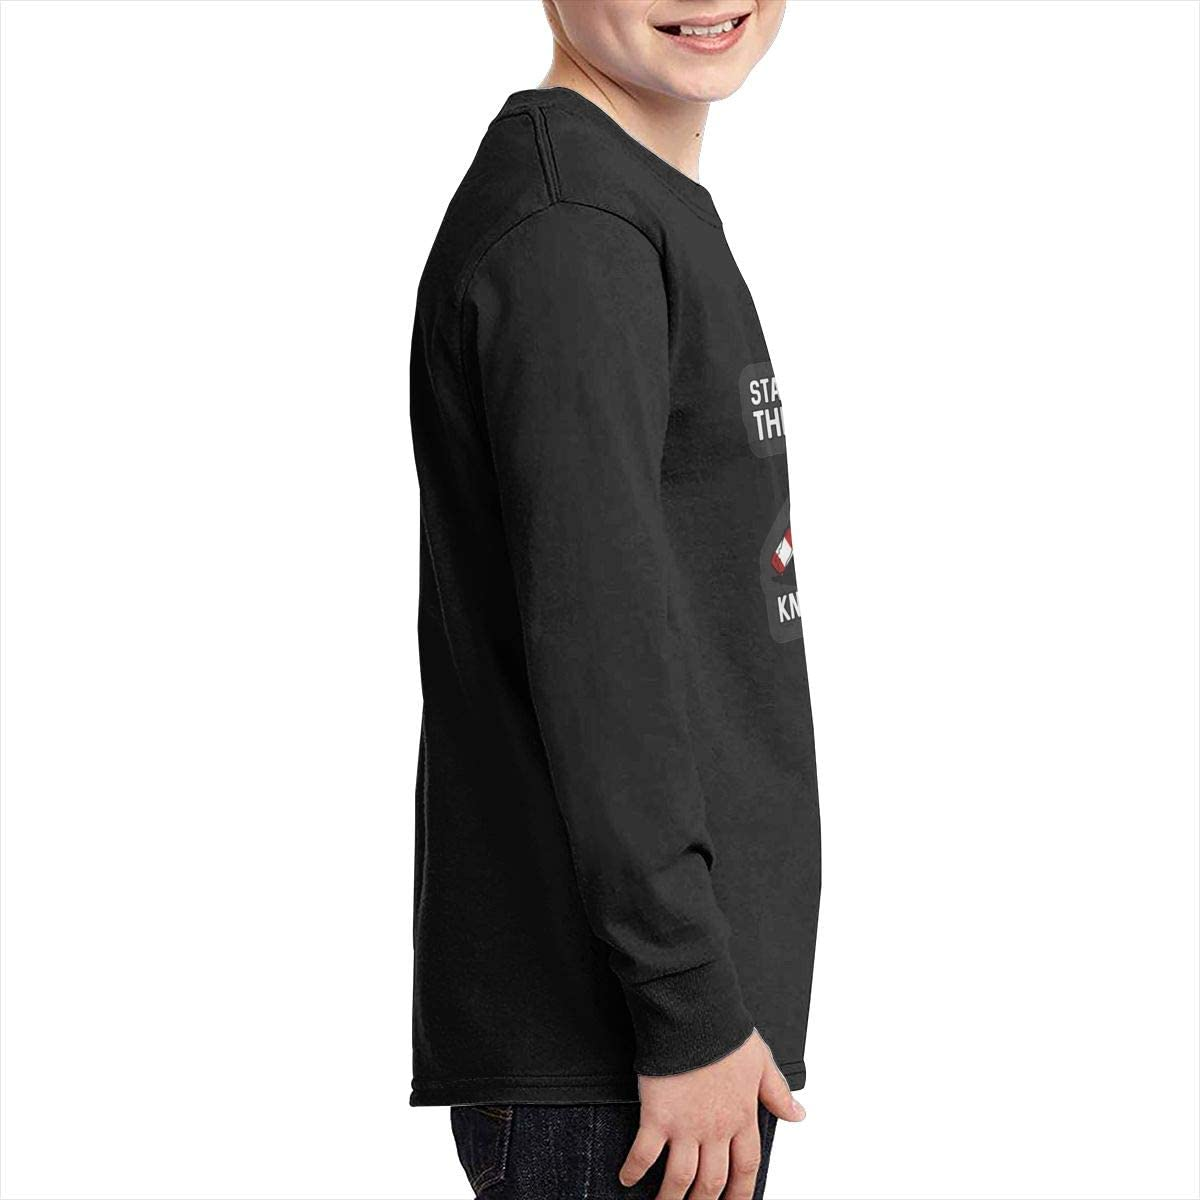 ZHAN-pcc I Stand for The Flag I Kneel for The Cross Boys Long Sleeve T Shirt Black